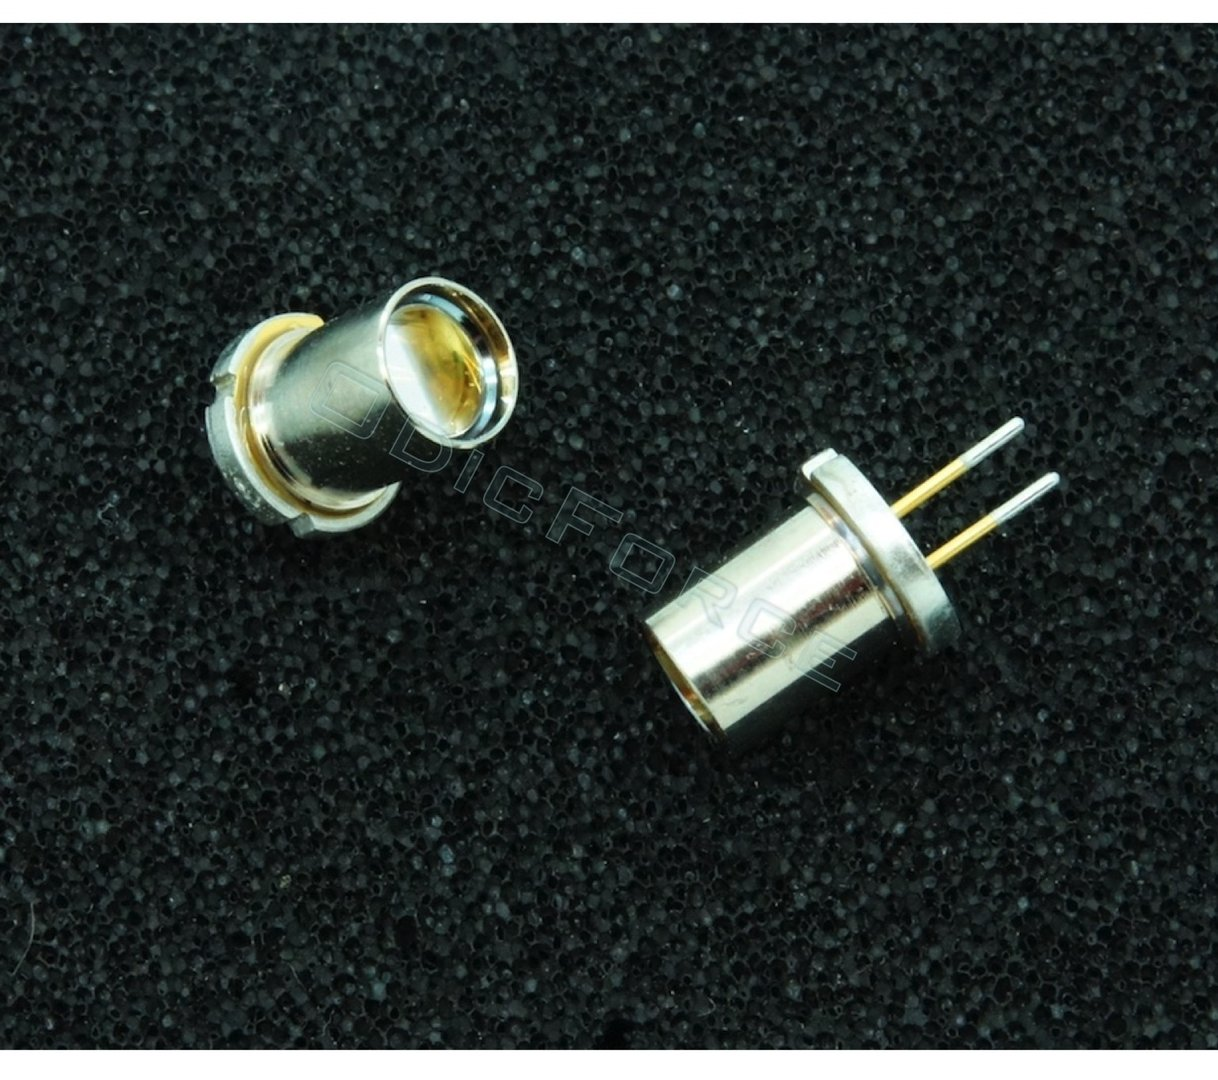 Nichia 4.3W+ 450nm Blue Laser Diode (9mm) NUBM08 (new, extracted with tinned pins and ball lens)